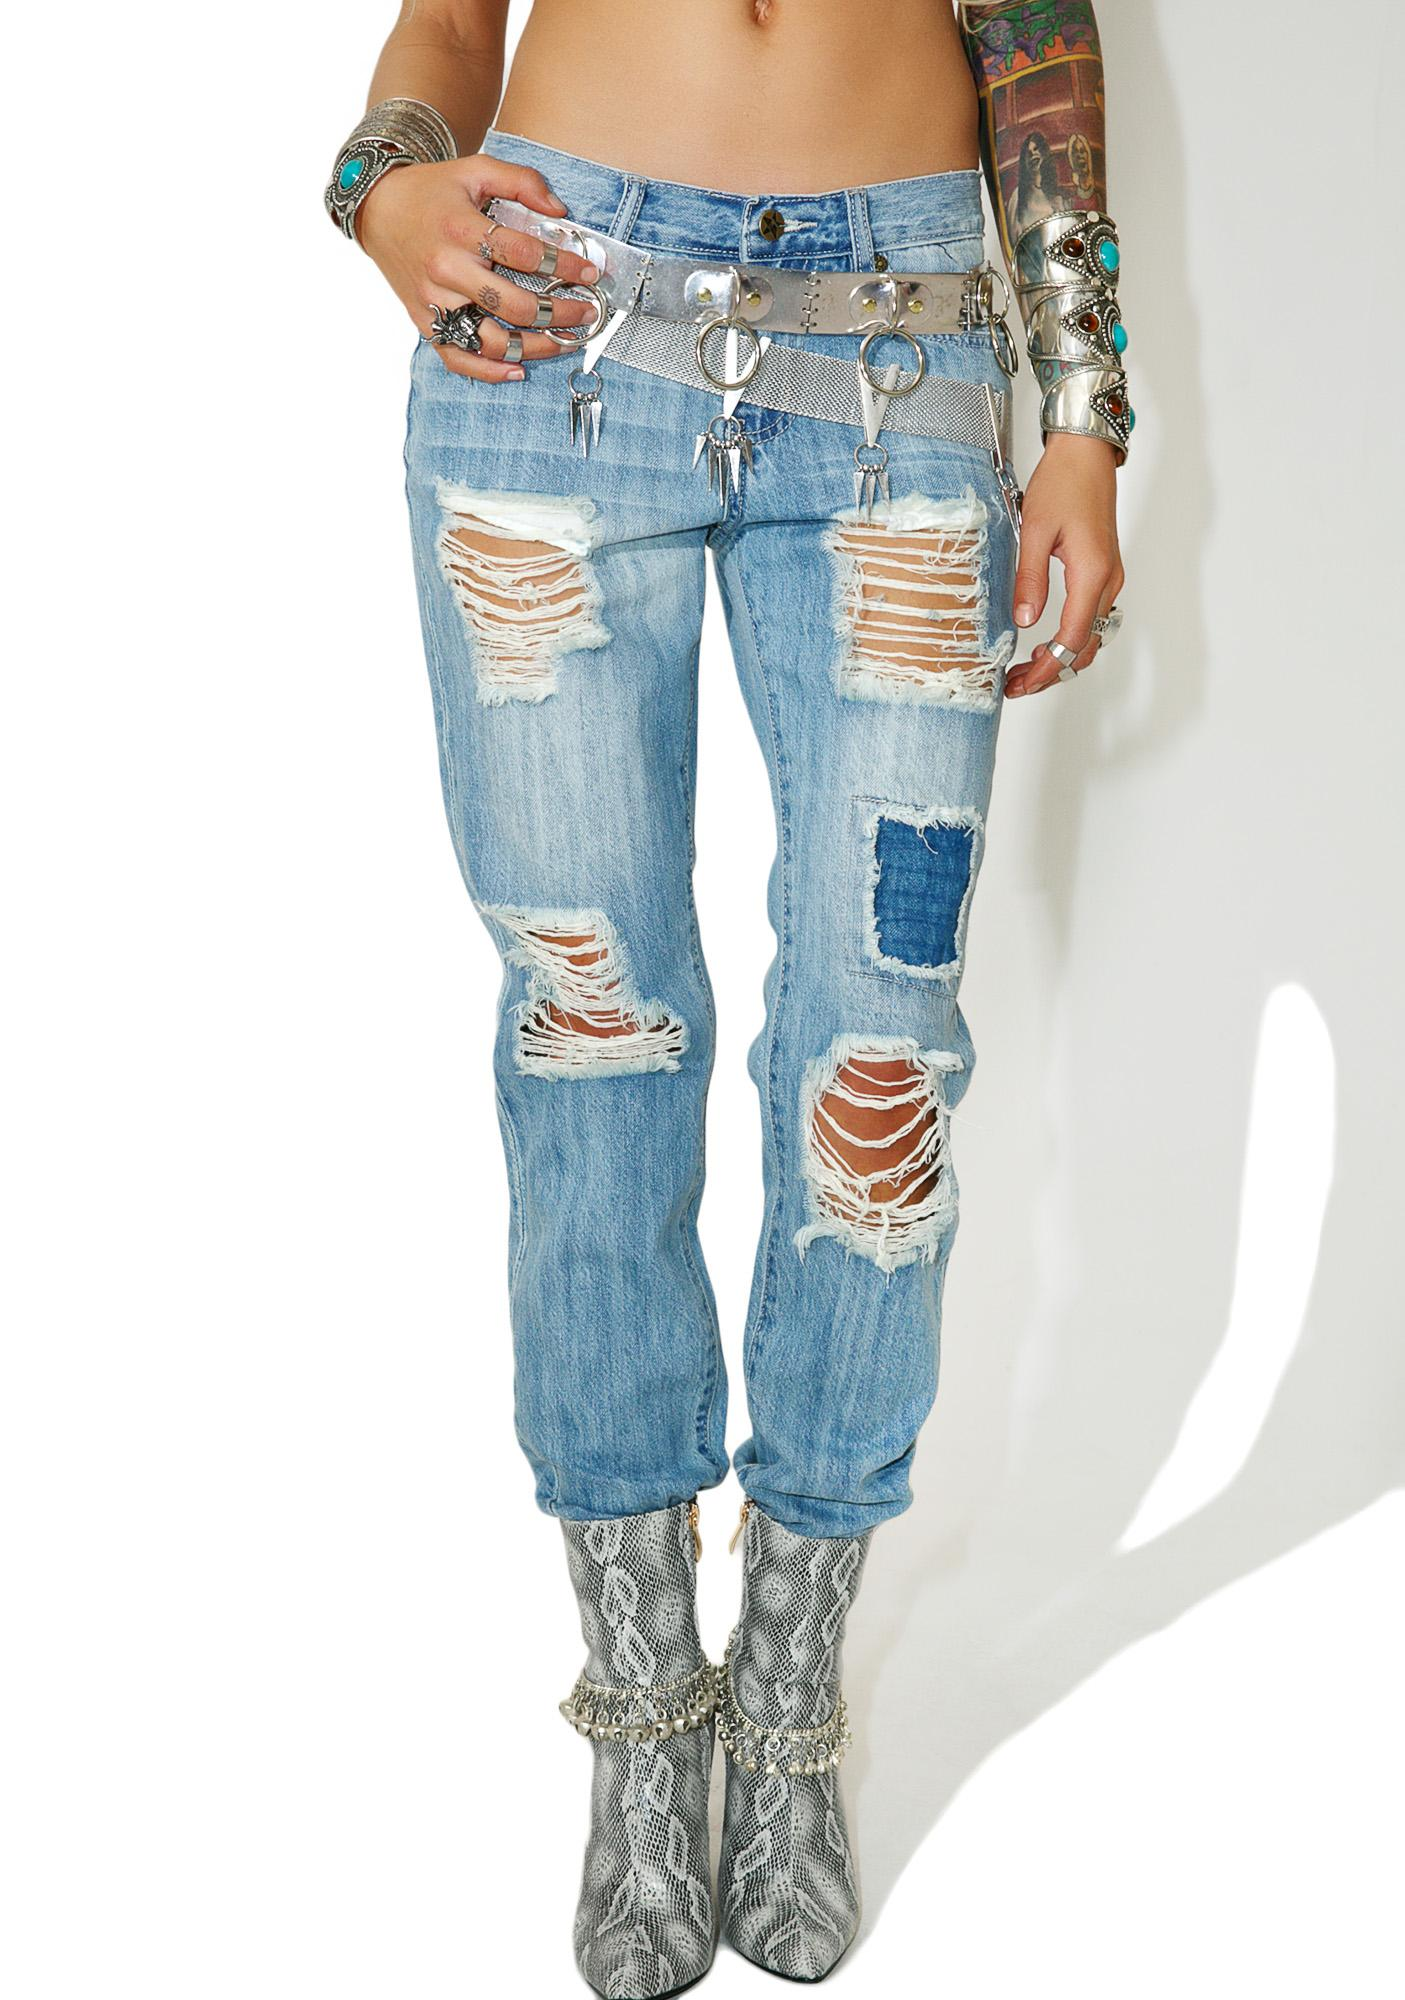 Chazz Distressed Denim Jeans